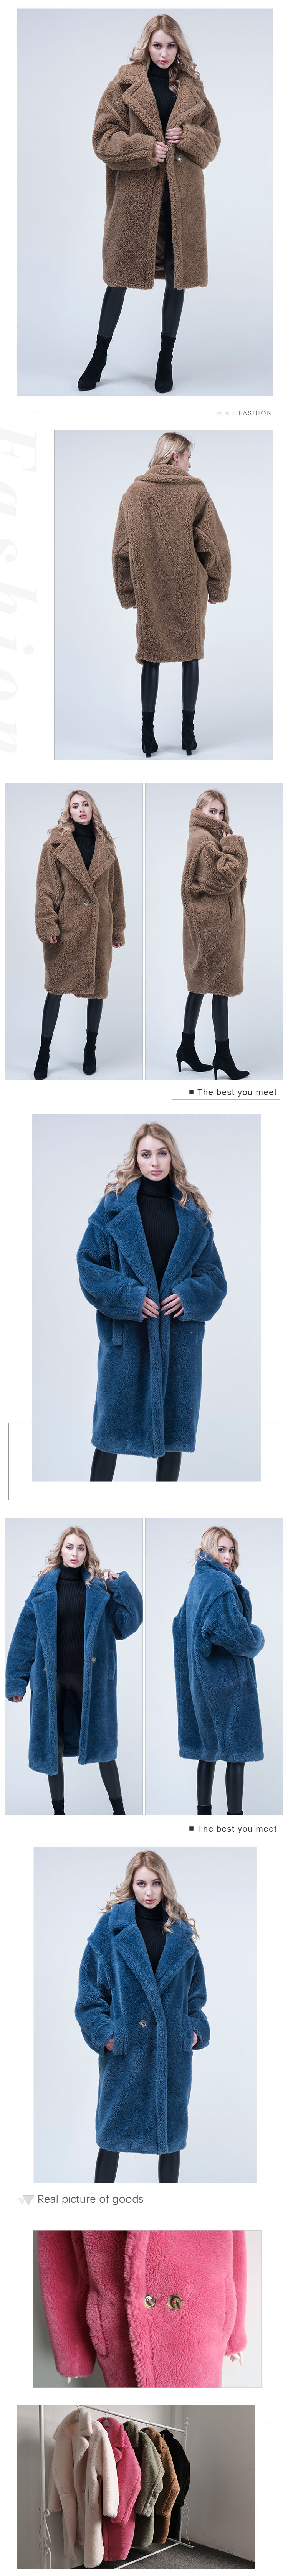 Wholesale  price long style teddy coat women winter real sheep sheared teddy bear coat